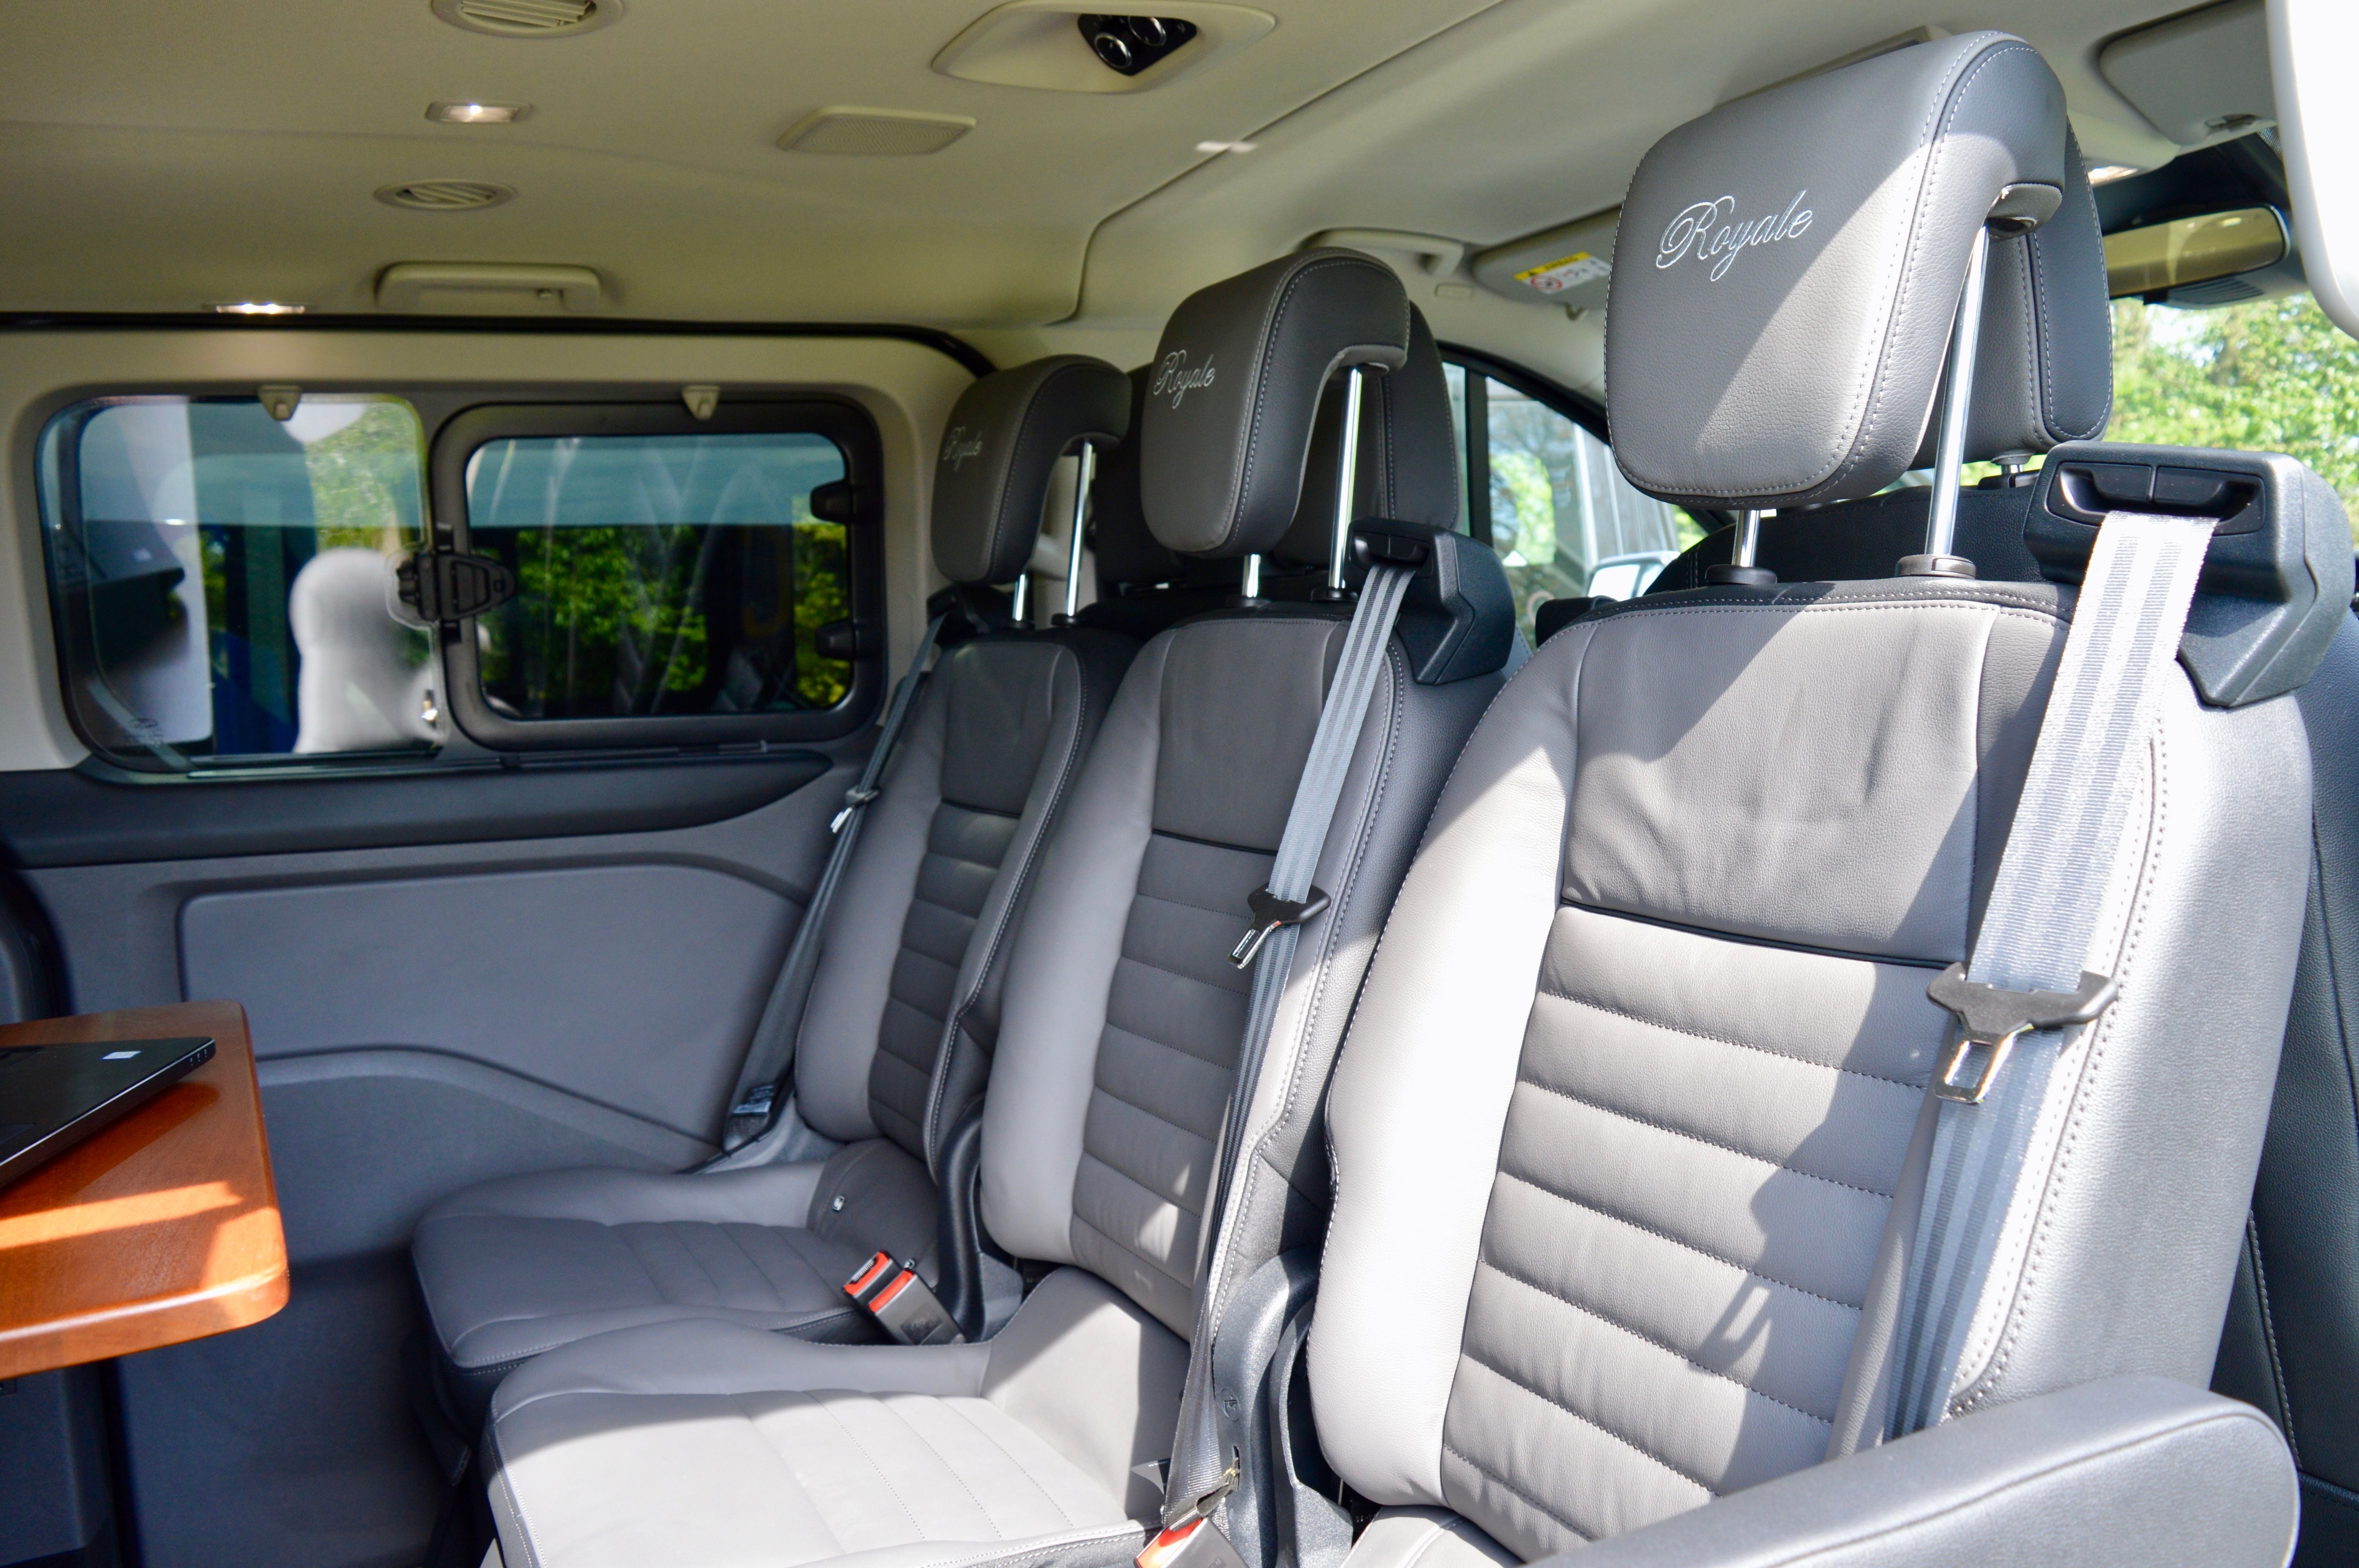 Another view of the leather seats within the vehicle showing how they are positioned next to the table